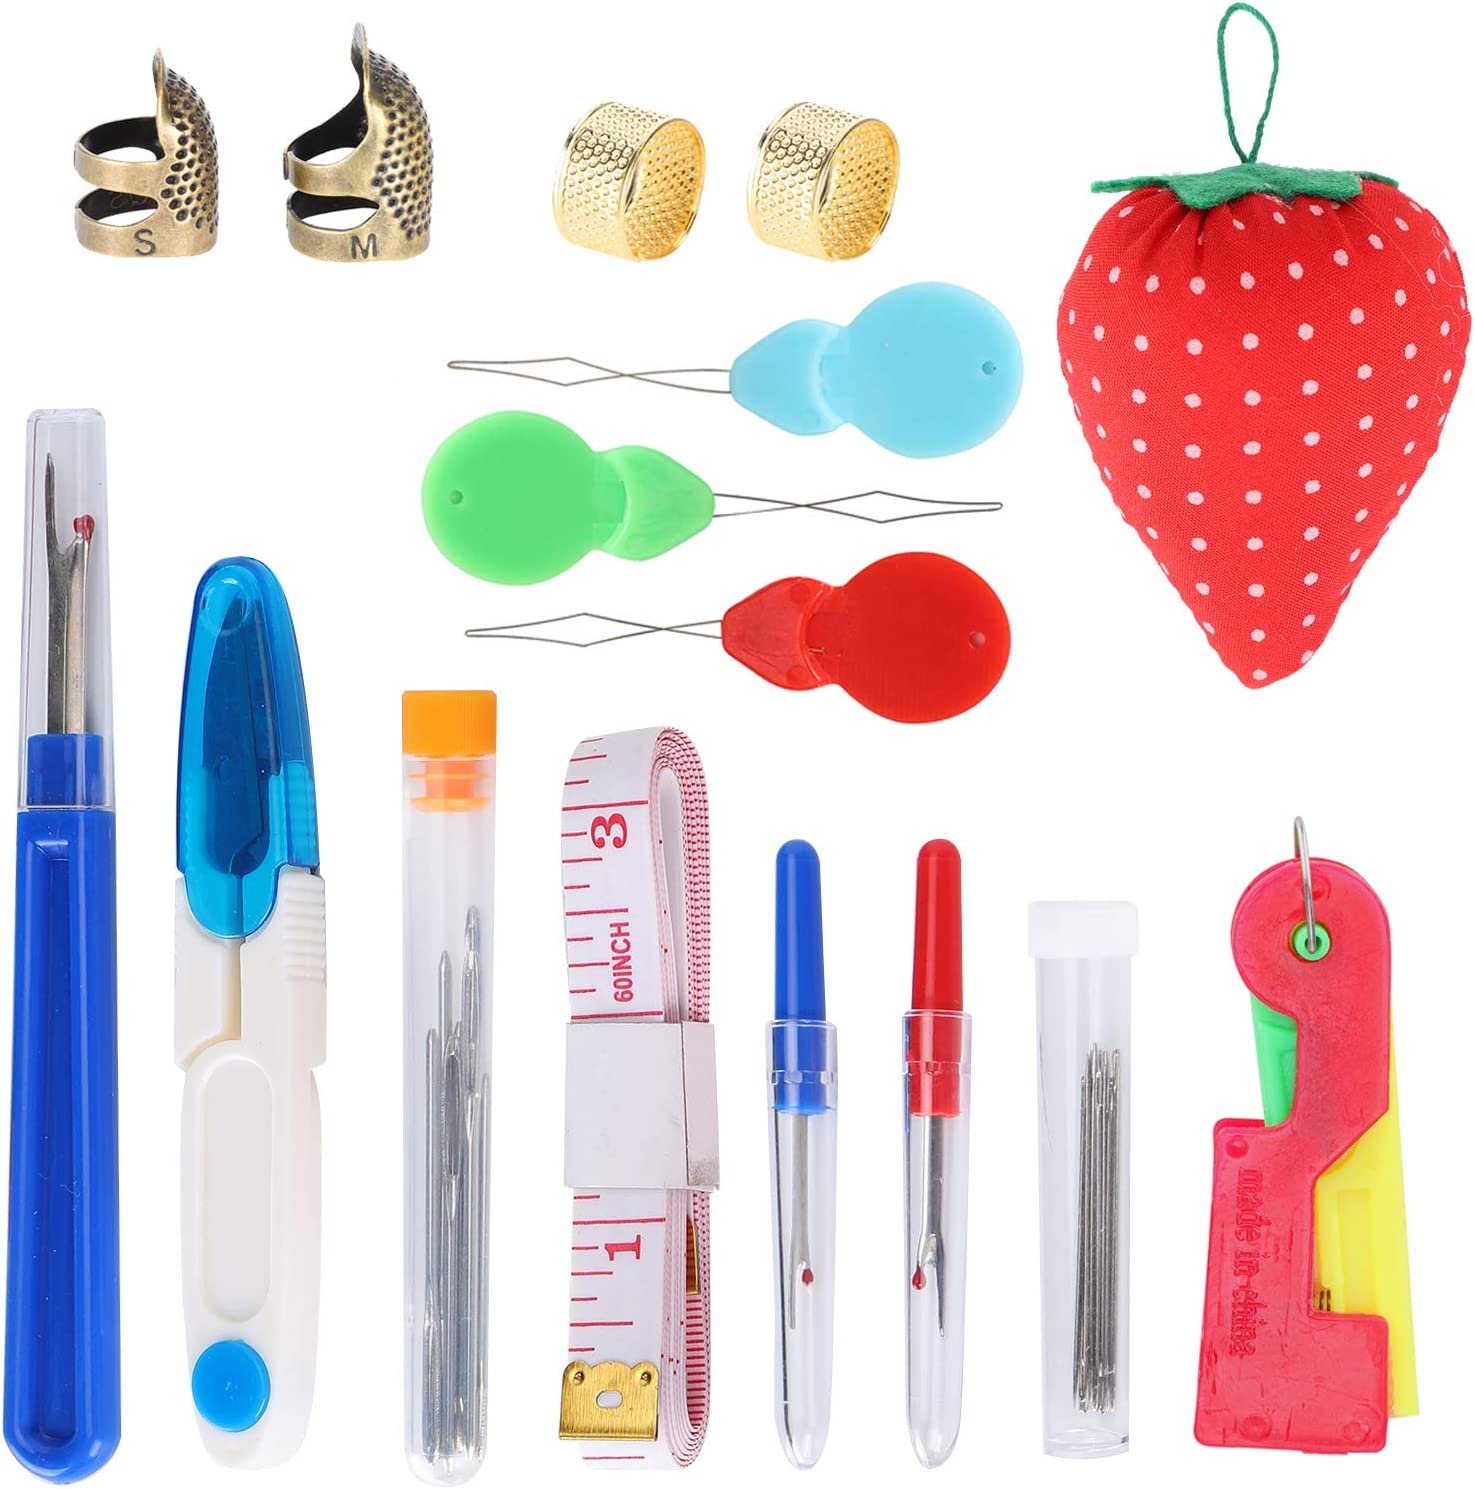 Sewing Tools Set, A Small Red Ball Design, for Most Sewing Indus